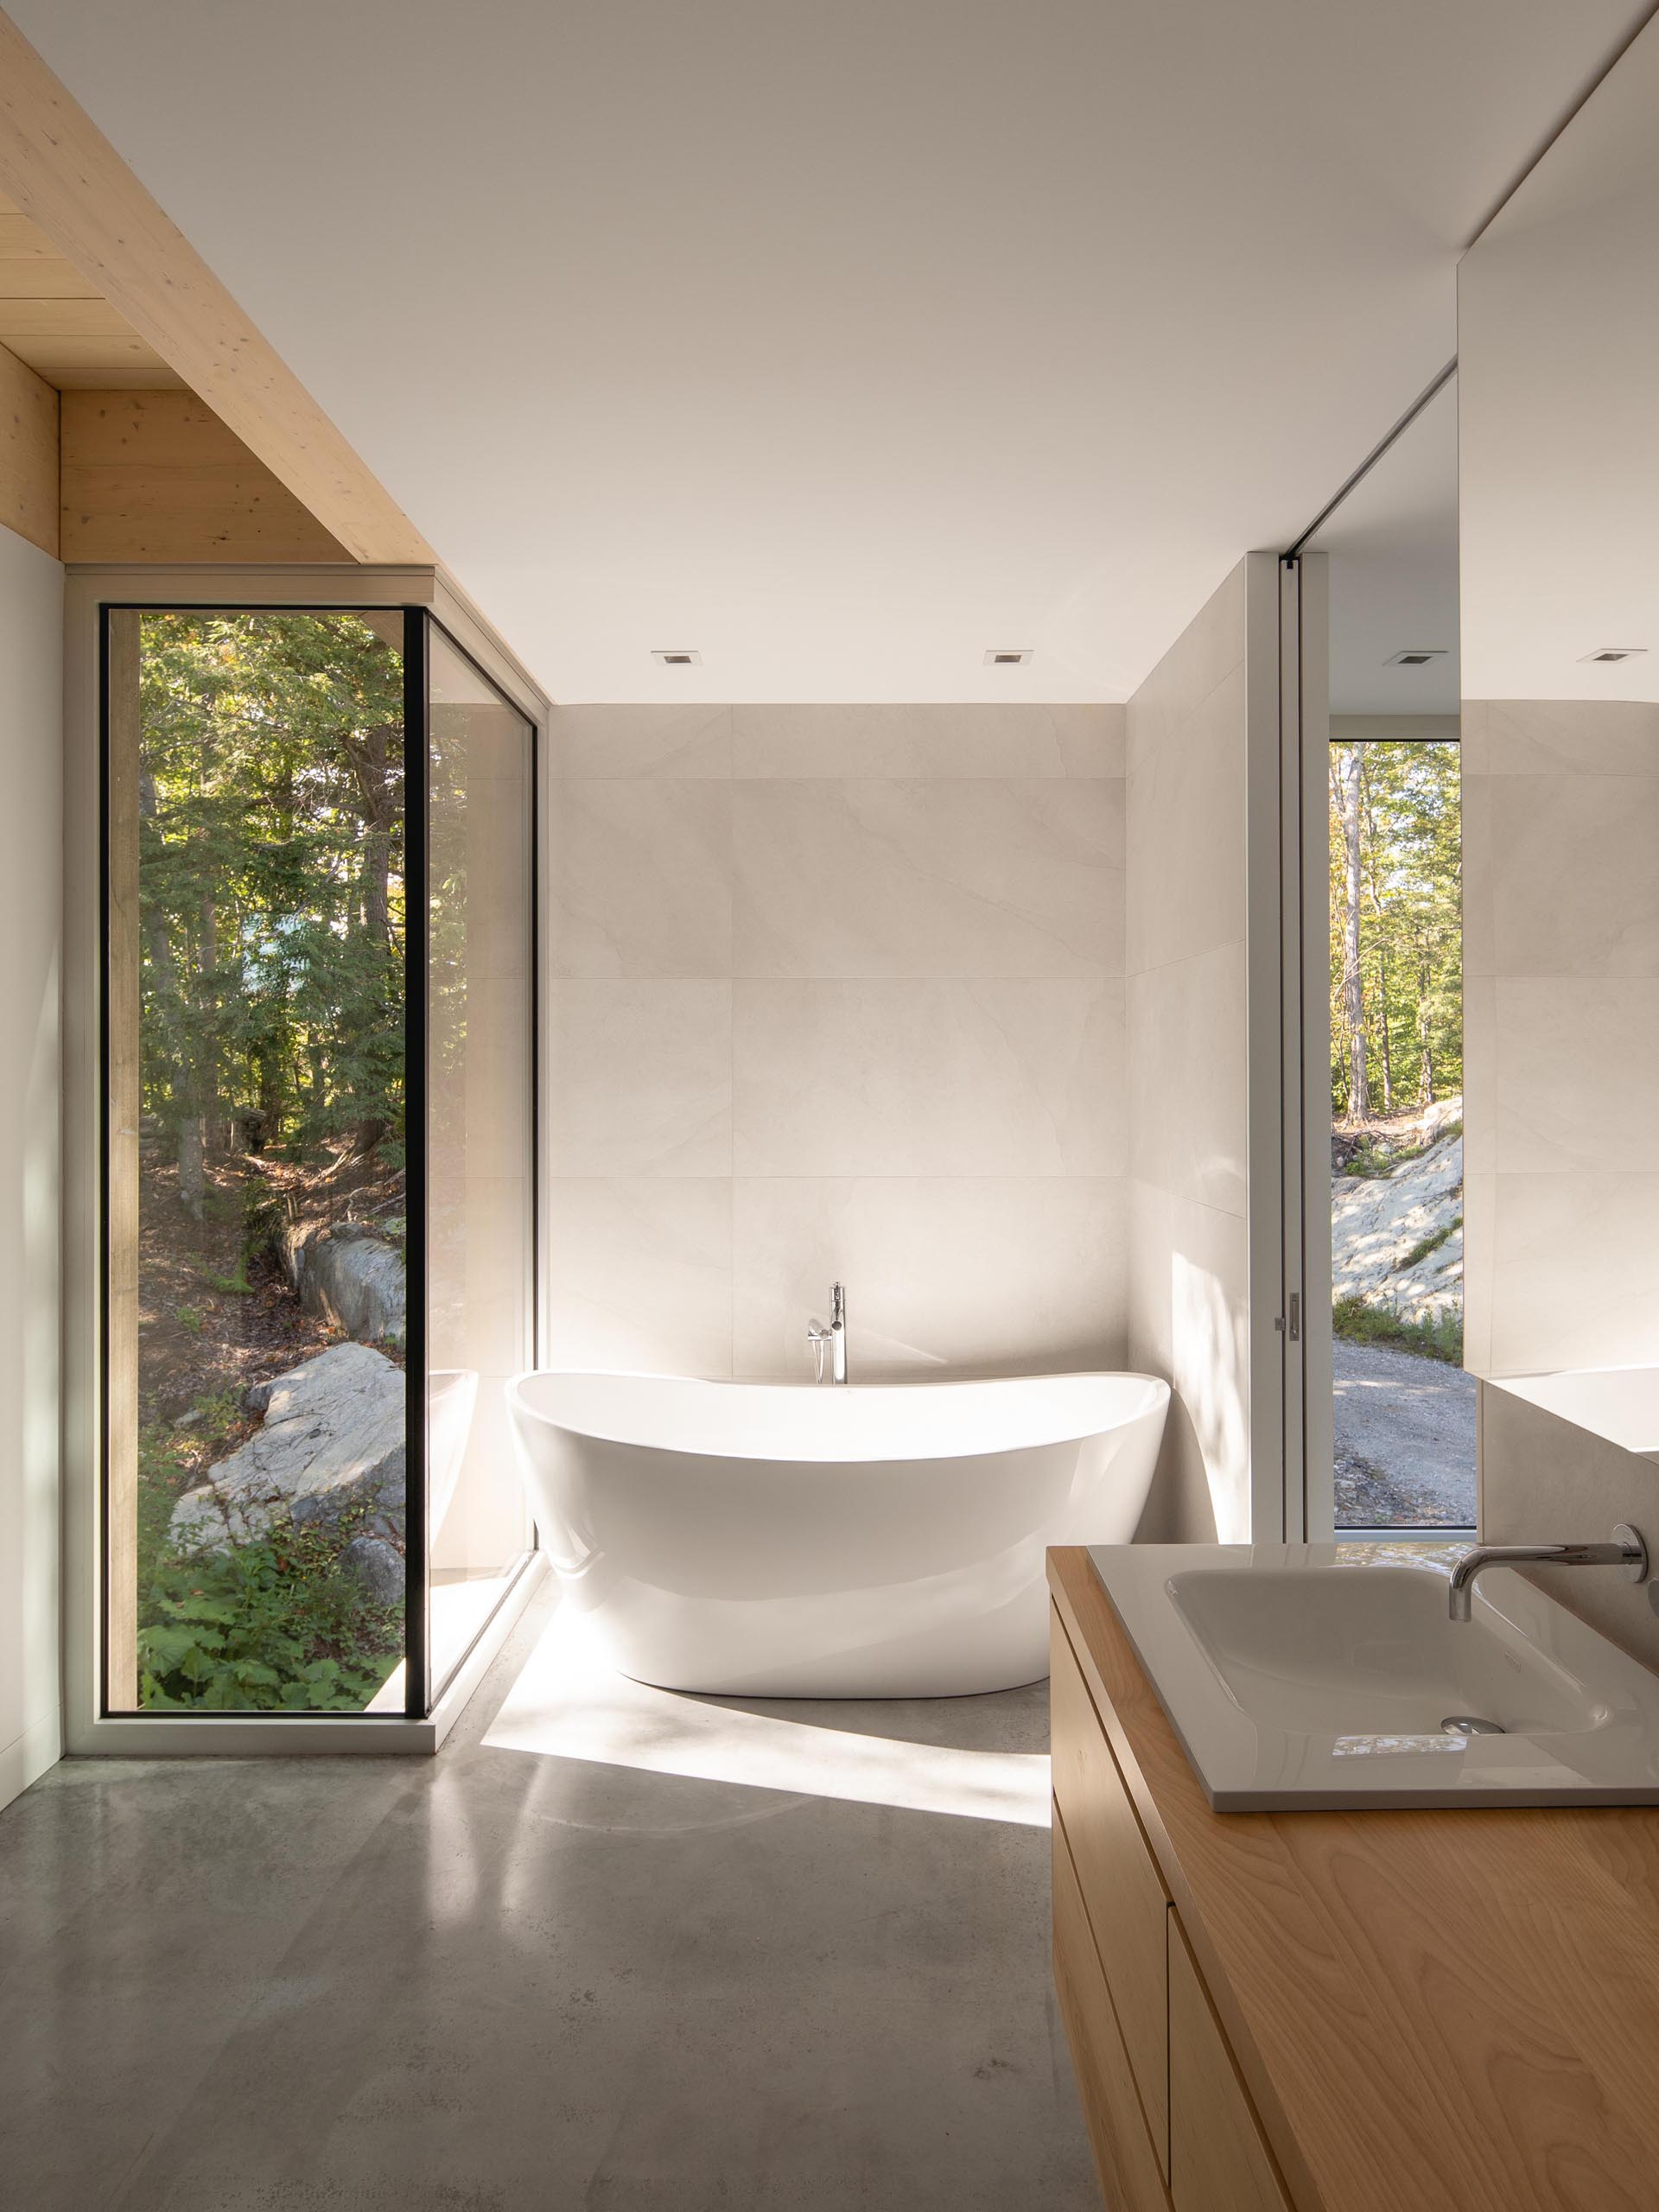 In this modern bathroom, there's a freestanding bathtub with forest views, while a wood vanity adds a natural element.